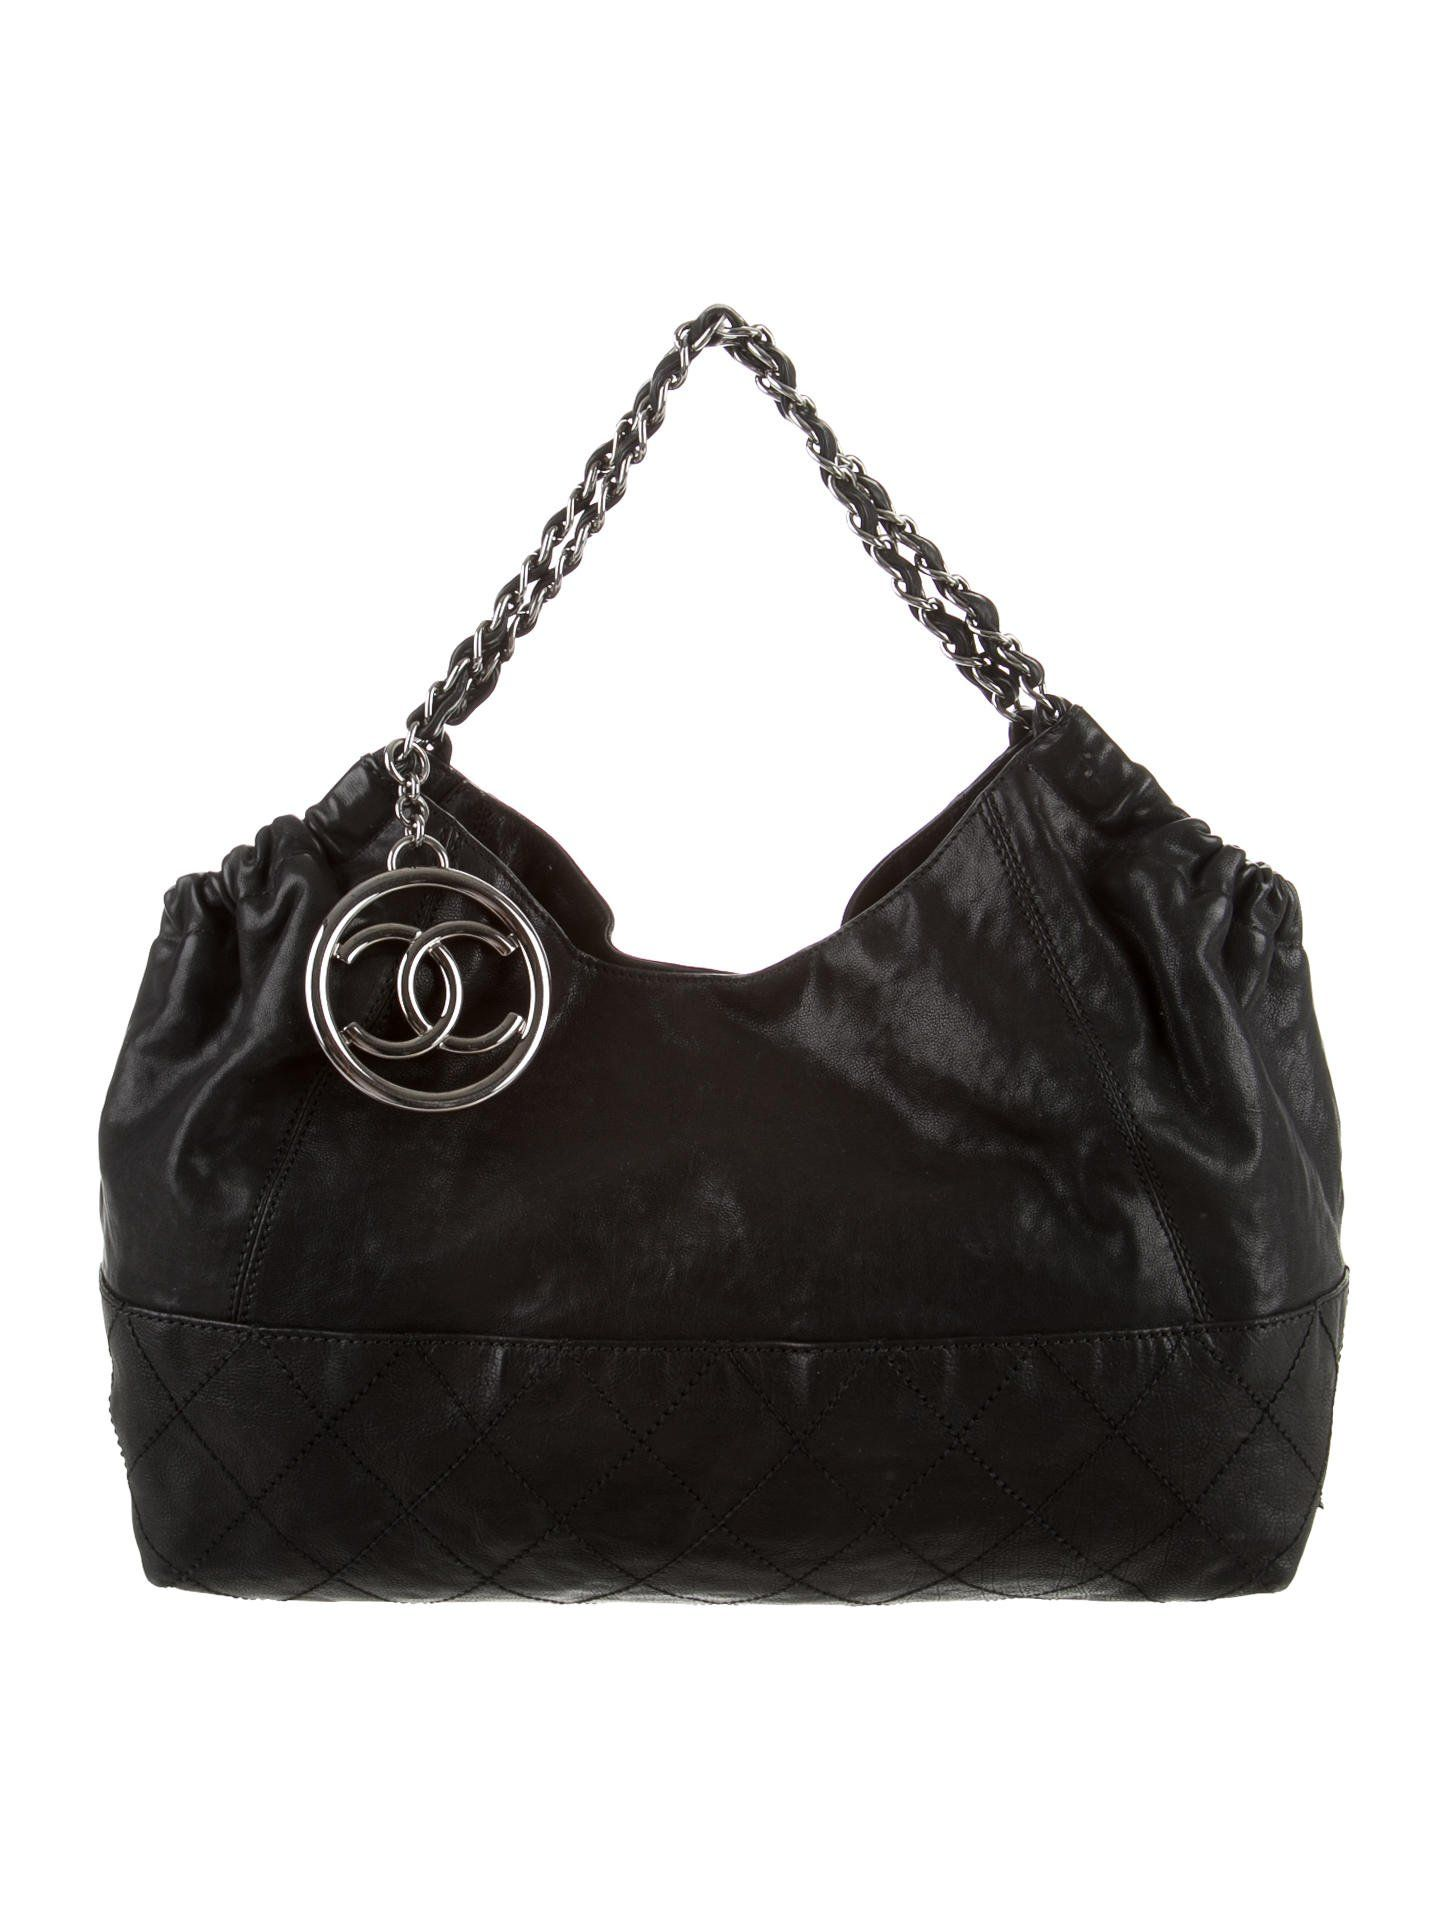 85f85e77426387 Chanel Black Coco Cabas Tote- Distressed Caviar Leather | Color is for  clowns.